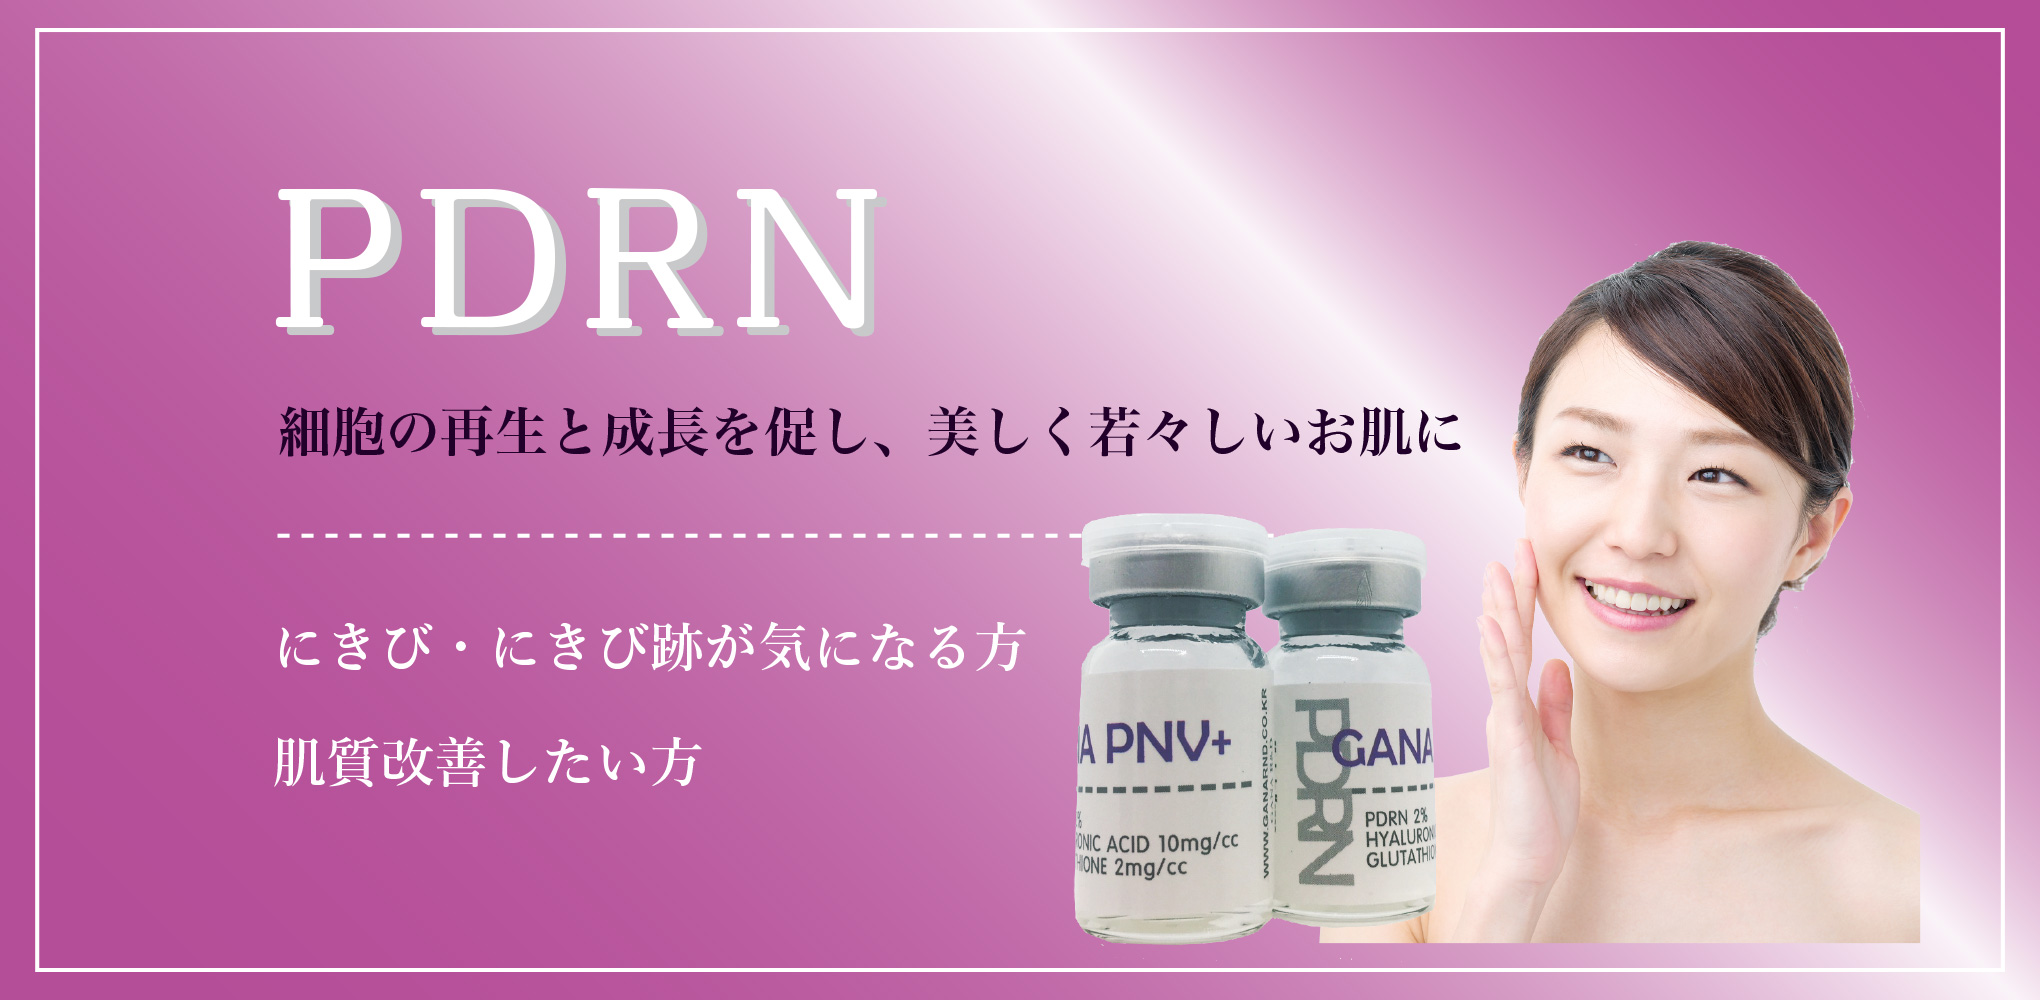 PDRN